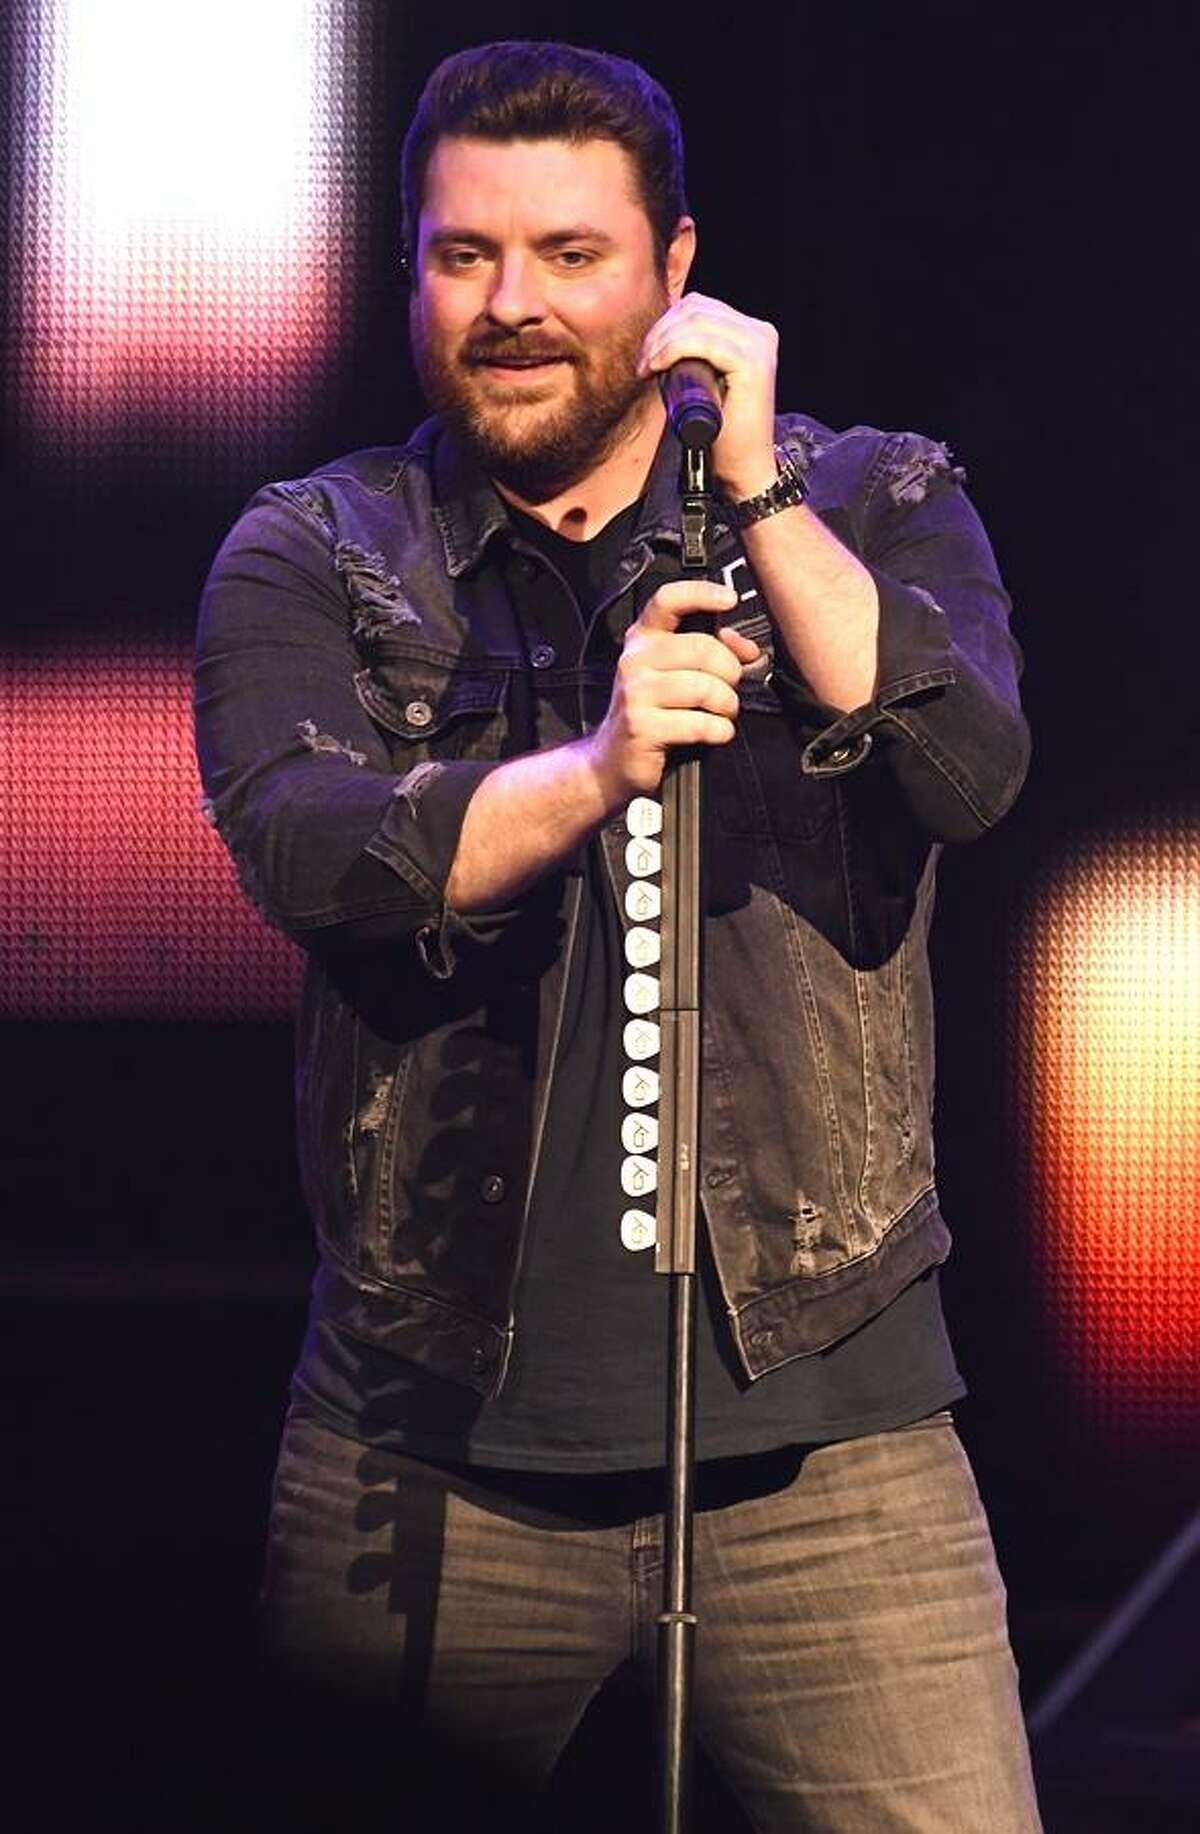 Country music singer and songwriter Chris Young is shown performing on stage during a sold out concert appearance at the Foxwoods Resort Casino in Mashantucket on Feb. 3. In 2006, he was declared the winner of the television program ?